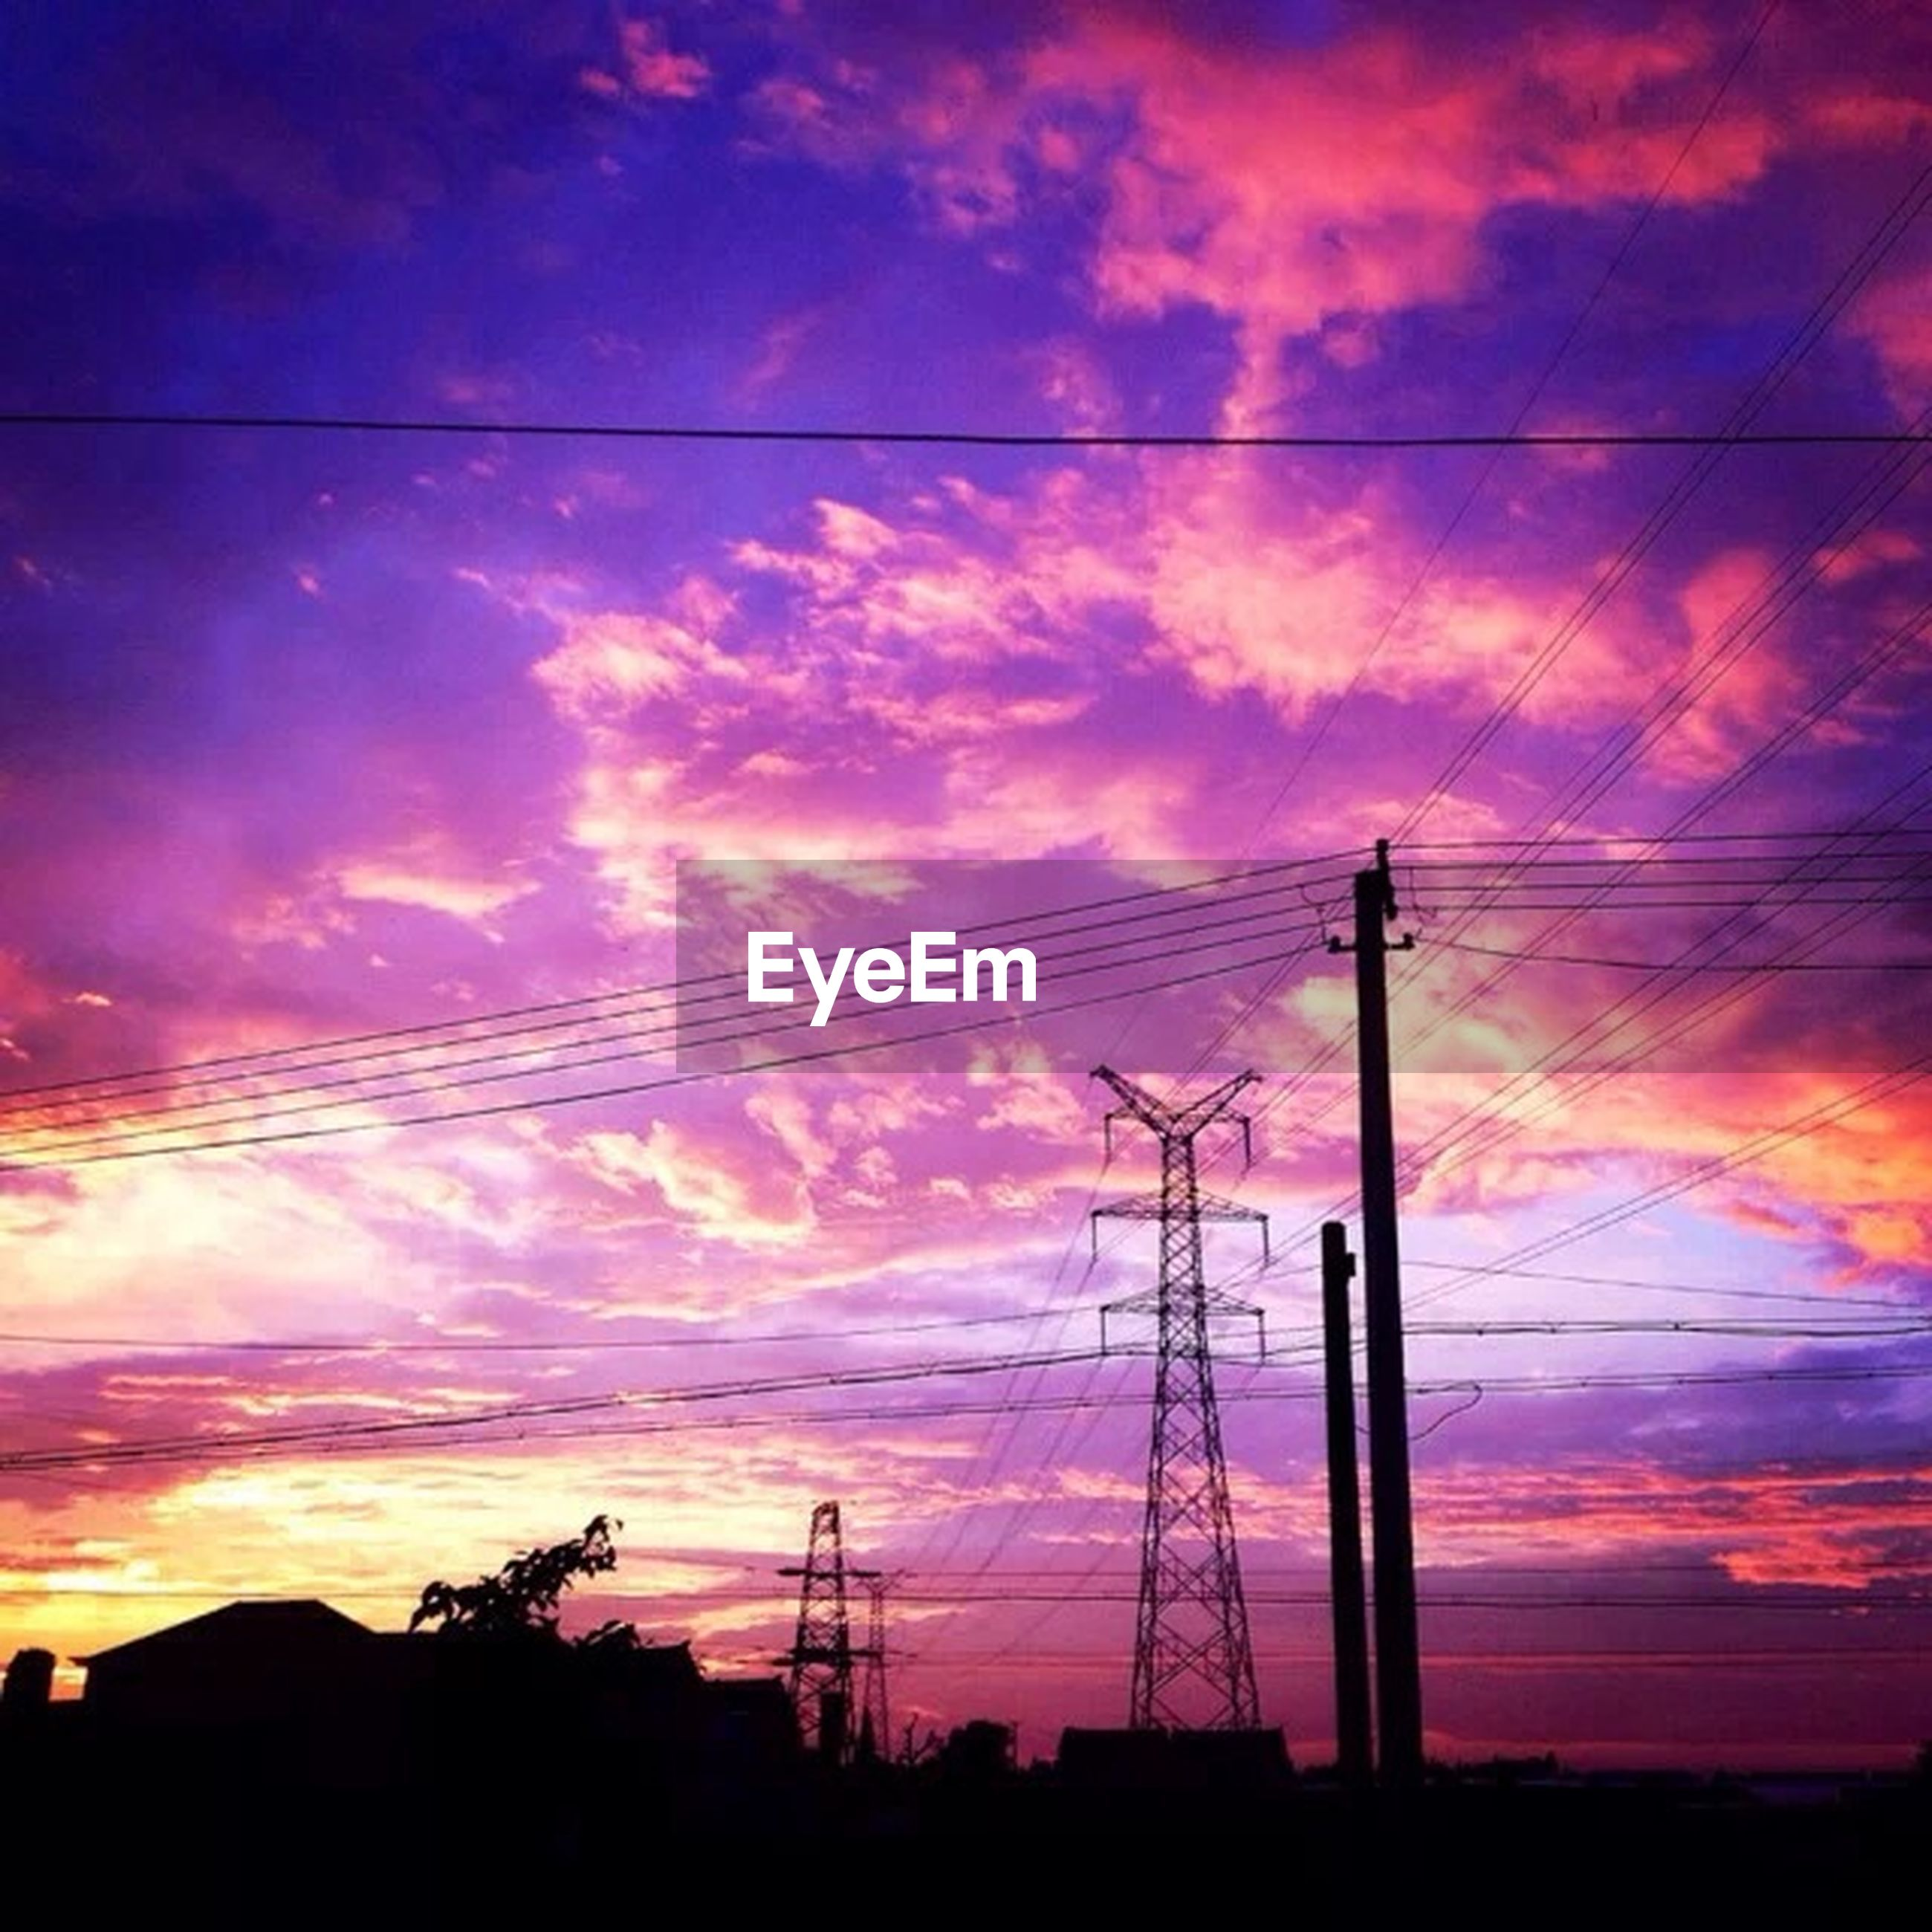 sunset, power line, electricity pylon, silhouette, power supply, sky, electricity, fuel and power generation, connection, cable, low angle view, cloud - sky, technology, orange color, cloud, cloudy, power cable, beauty in nature, scenics, dramatic sky